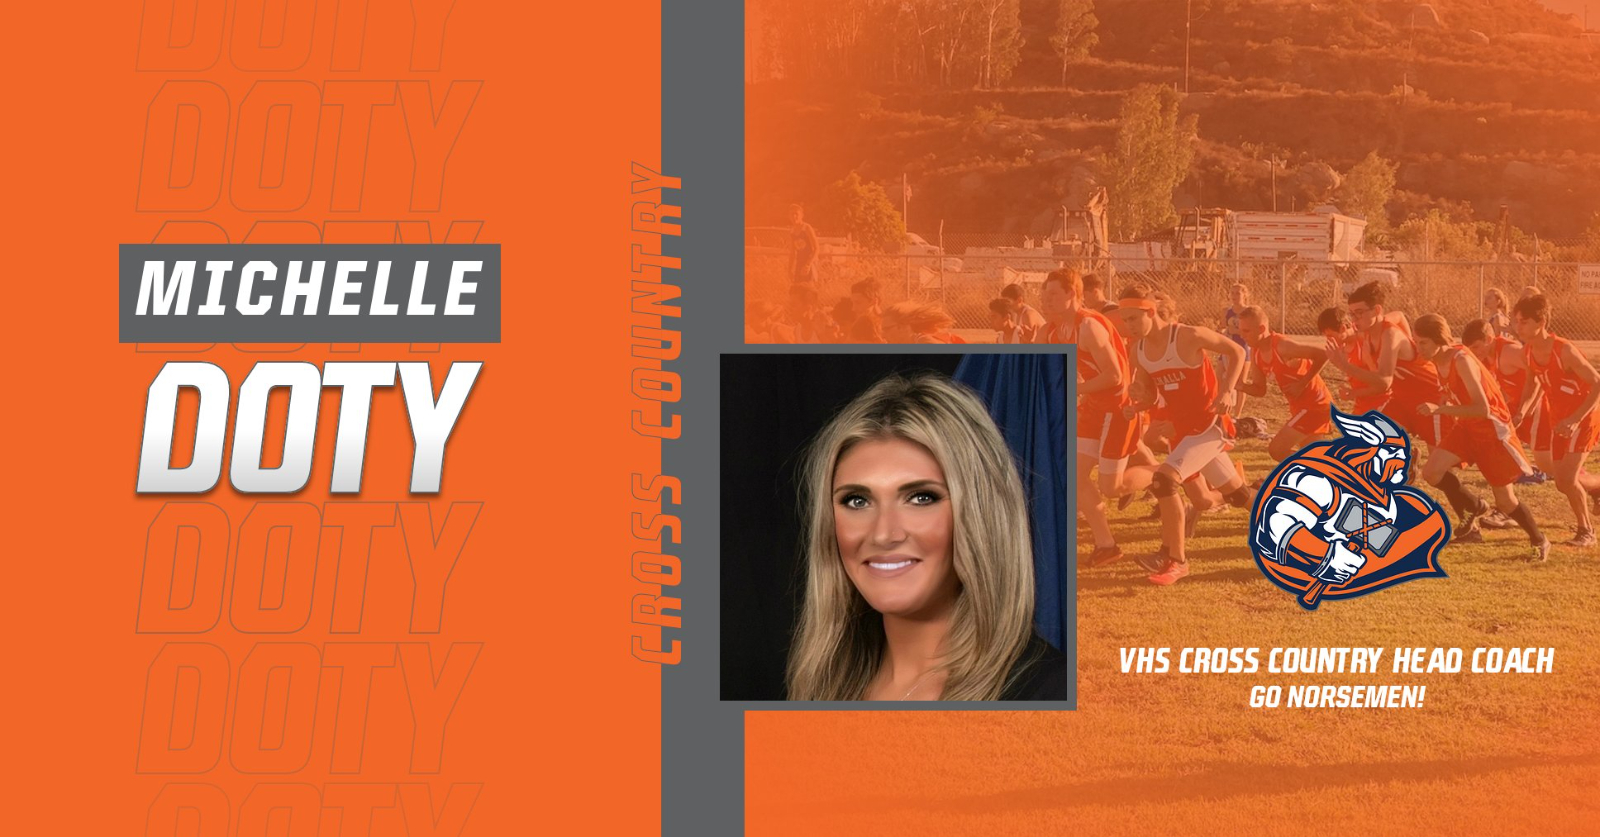 Michelle Doty – VHS Cross Country Head Coach